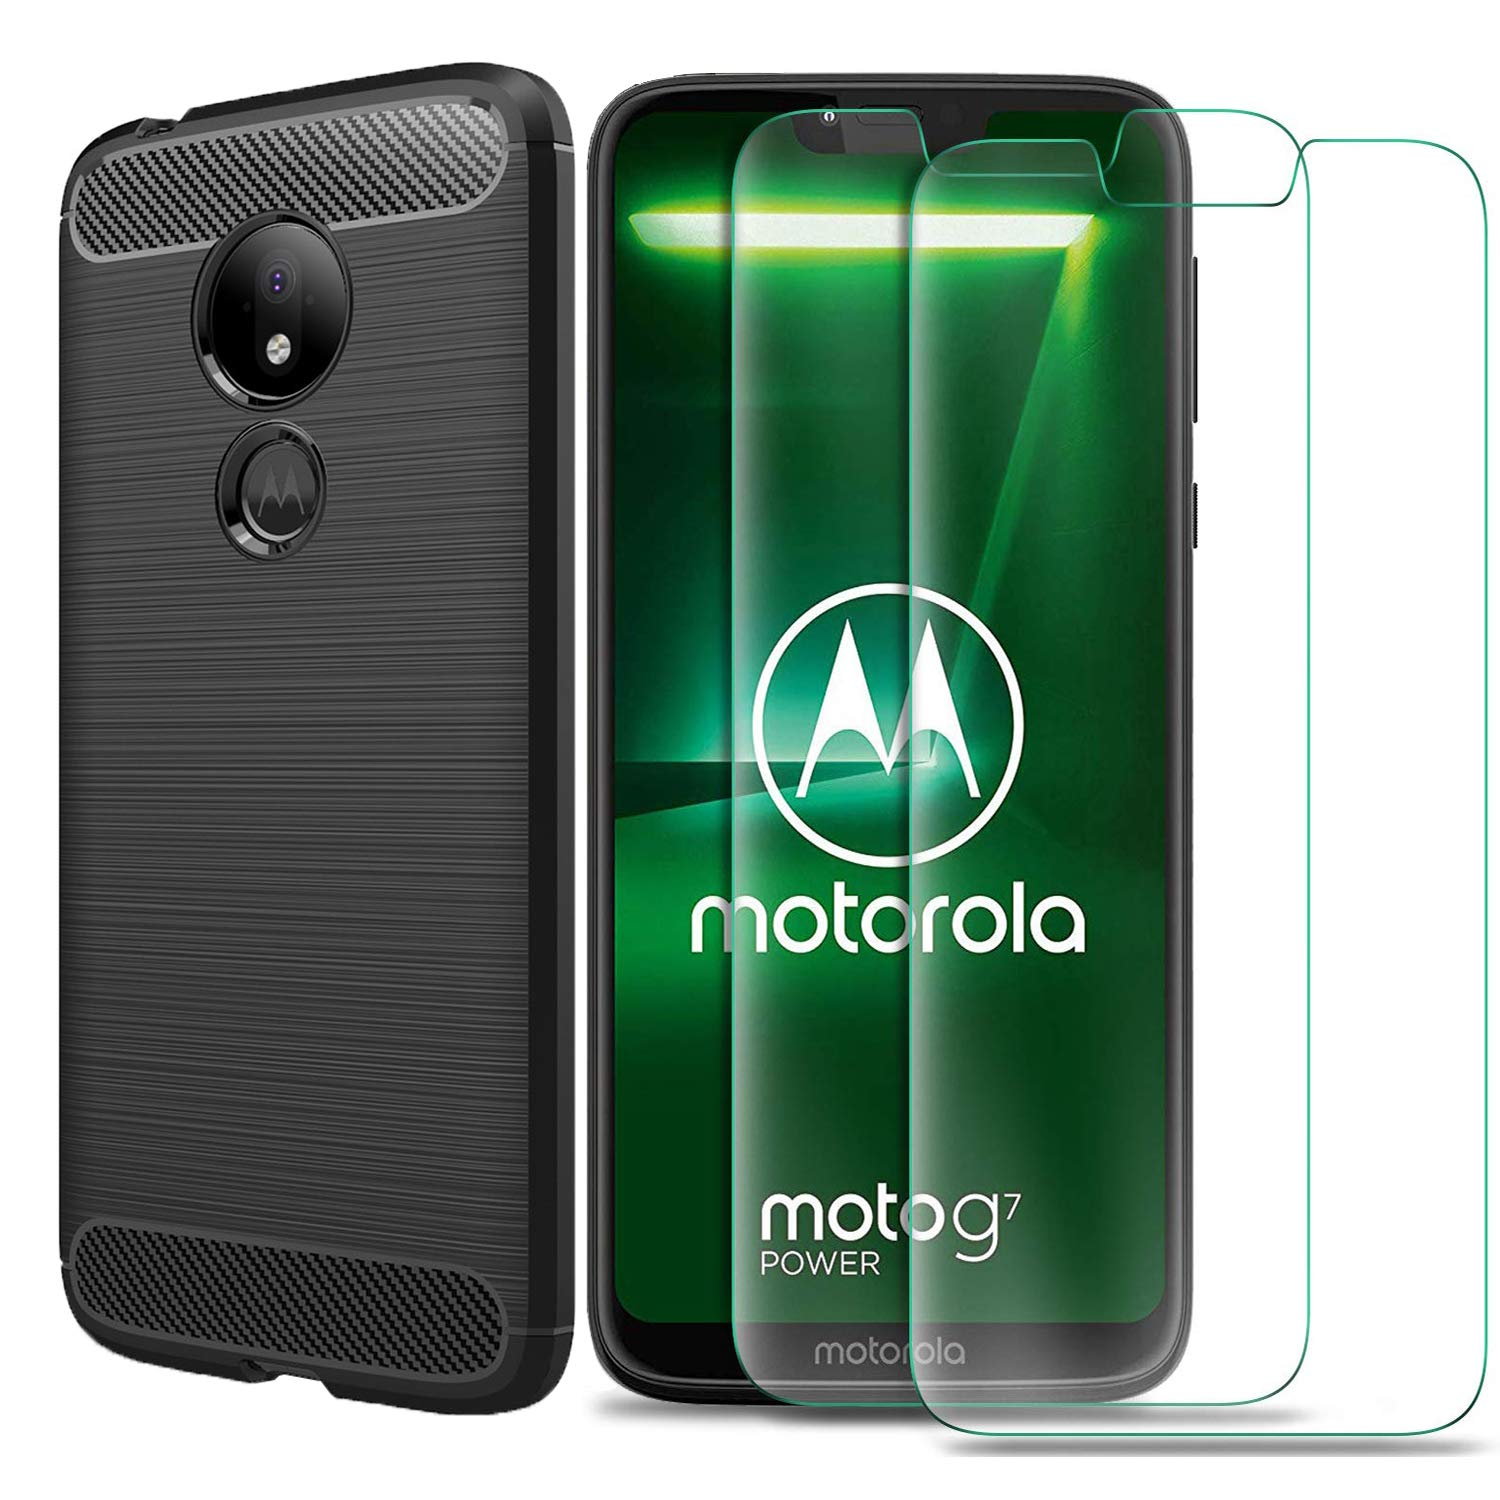 MYLBOO For Moto G7 Power Case with Screen Protector,[3 in 1] Soft Slim Flex TPU Silicone Case + [2 PACK] 9H Tempered Glass Screen Protector For Motorola Moto G7 Power (Black)